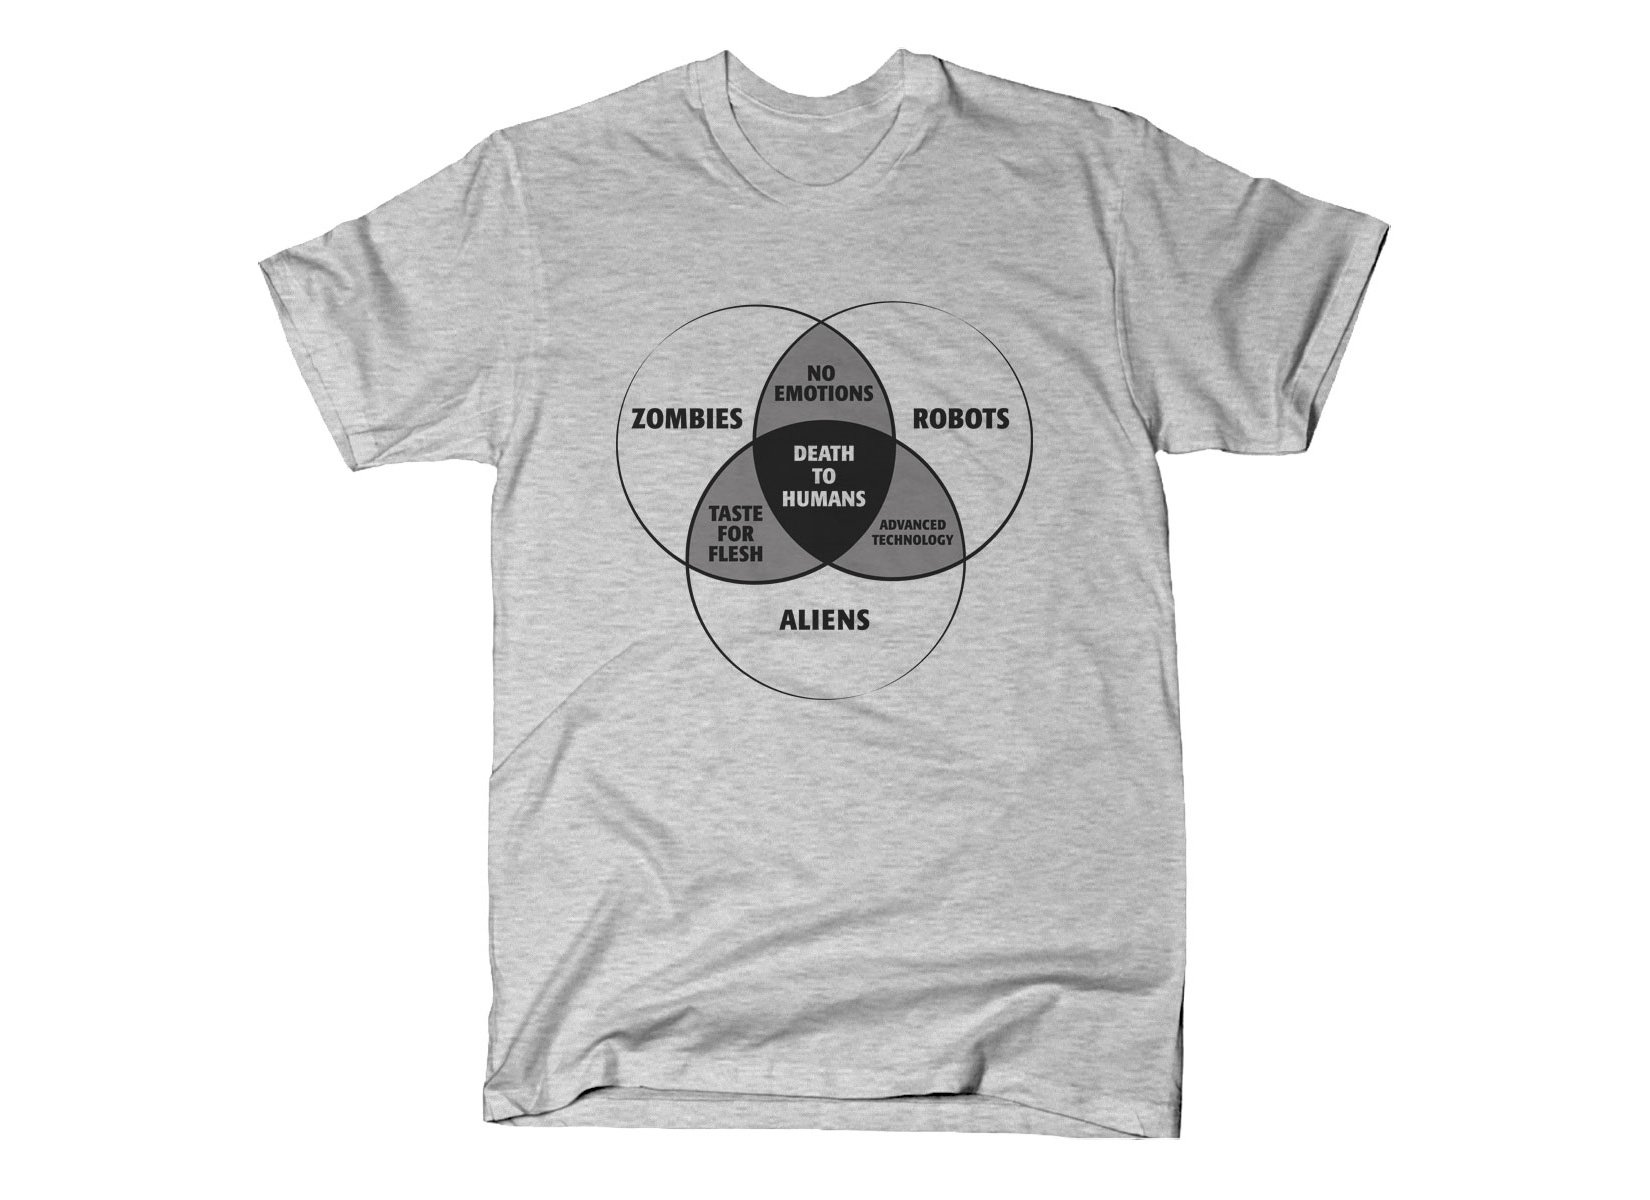 snorg_zombieveendiagram_1 zombies, robots, and aliens venn diagram t shirt snorgtees shirt diagram at couponss.co